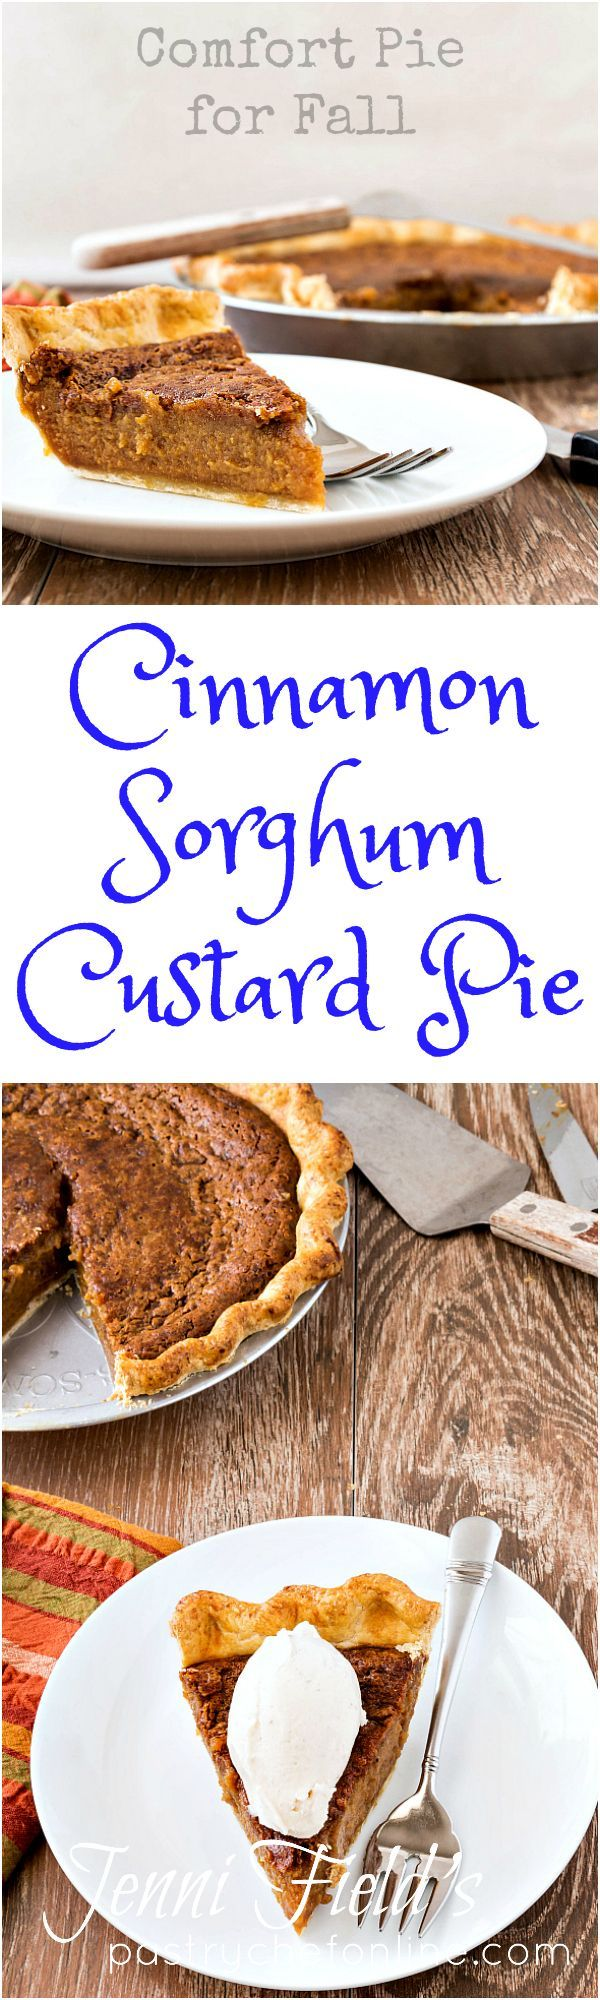 Cinnamon Sorghum Custard Pie is a comforting fall pie that is easy to make using pantry staples most of you have on hand. Sorghum syrup is worth seeking out. Consider this an alternative to pumpkin pie or pecan pie for Thanksgiving dessert, too. | http://pastrychefonline.com